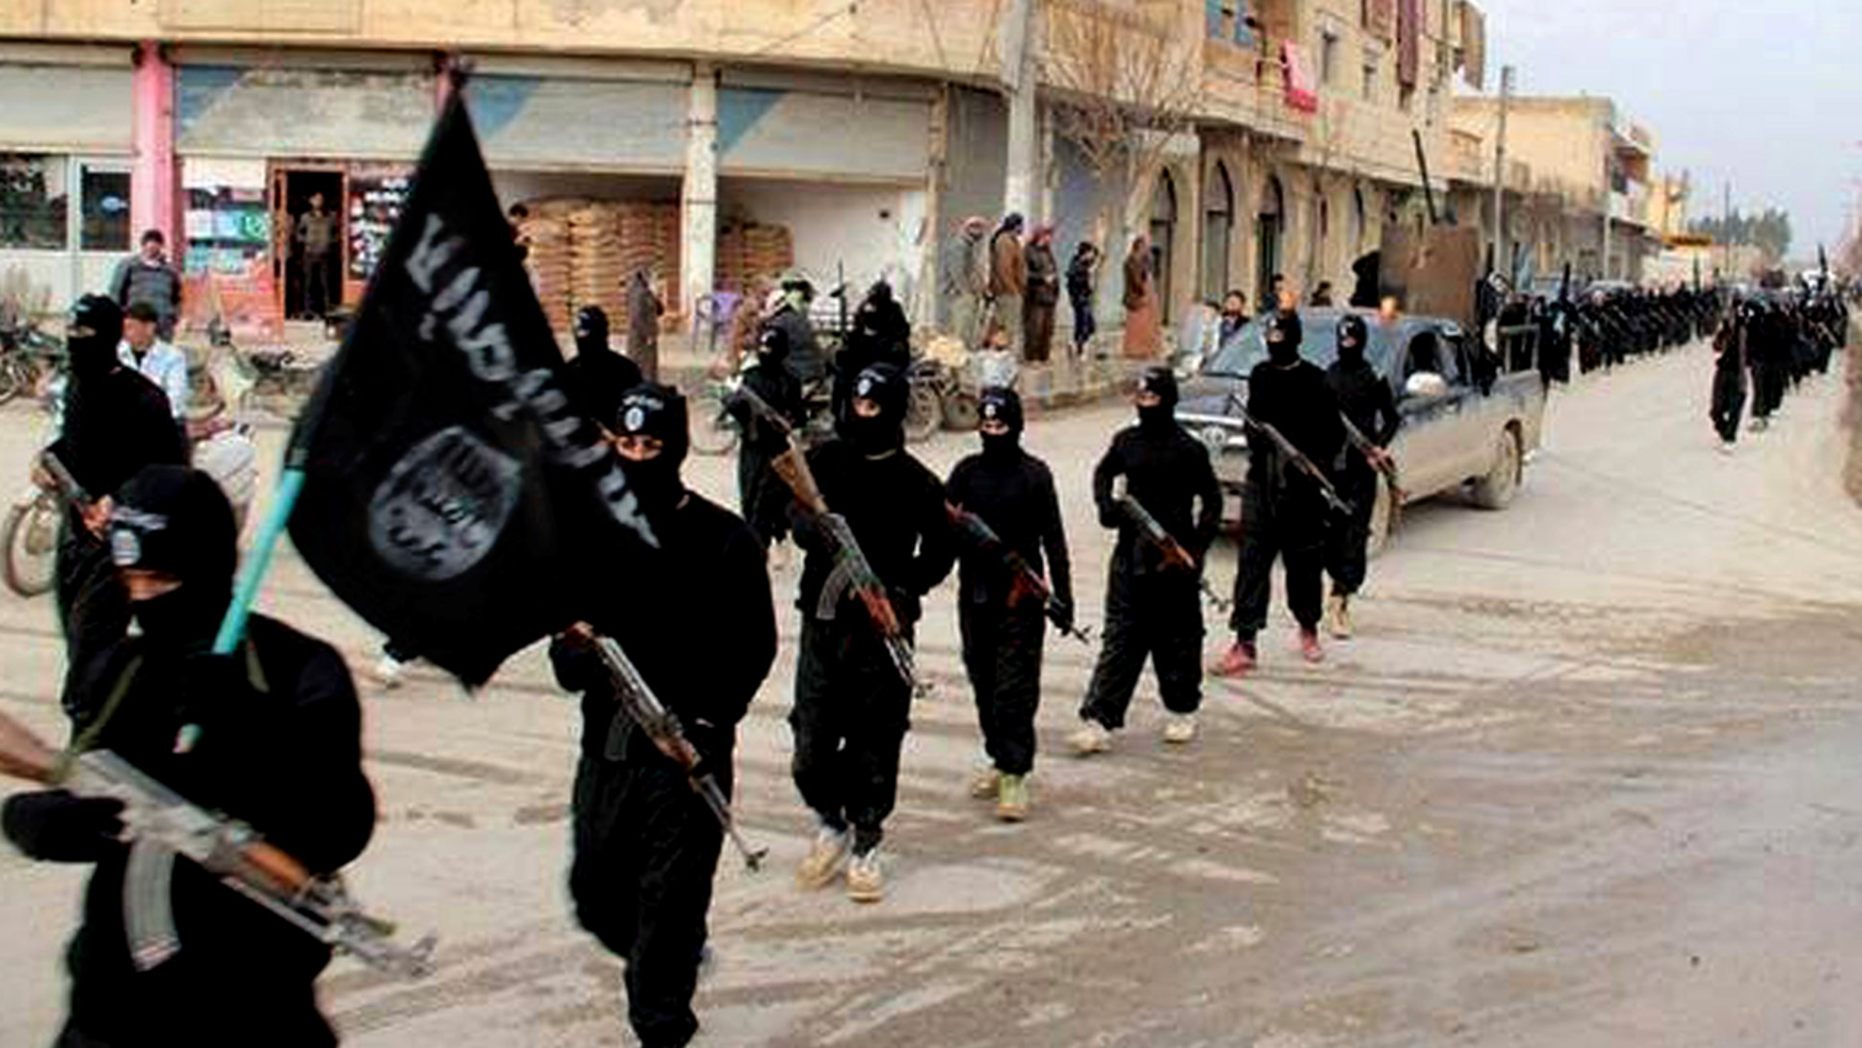 ISIS militants marching in Raqqa, Syria.